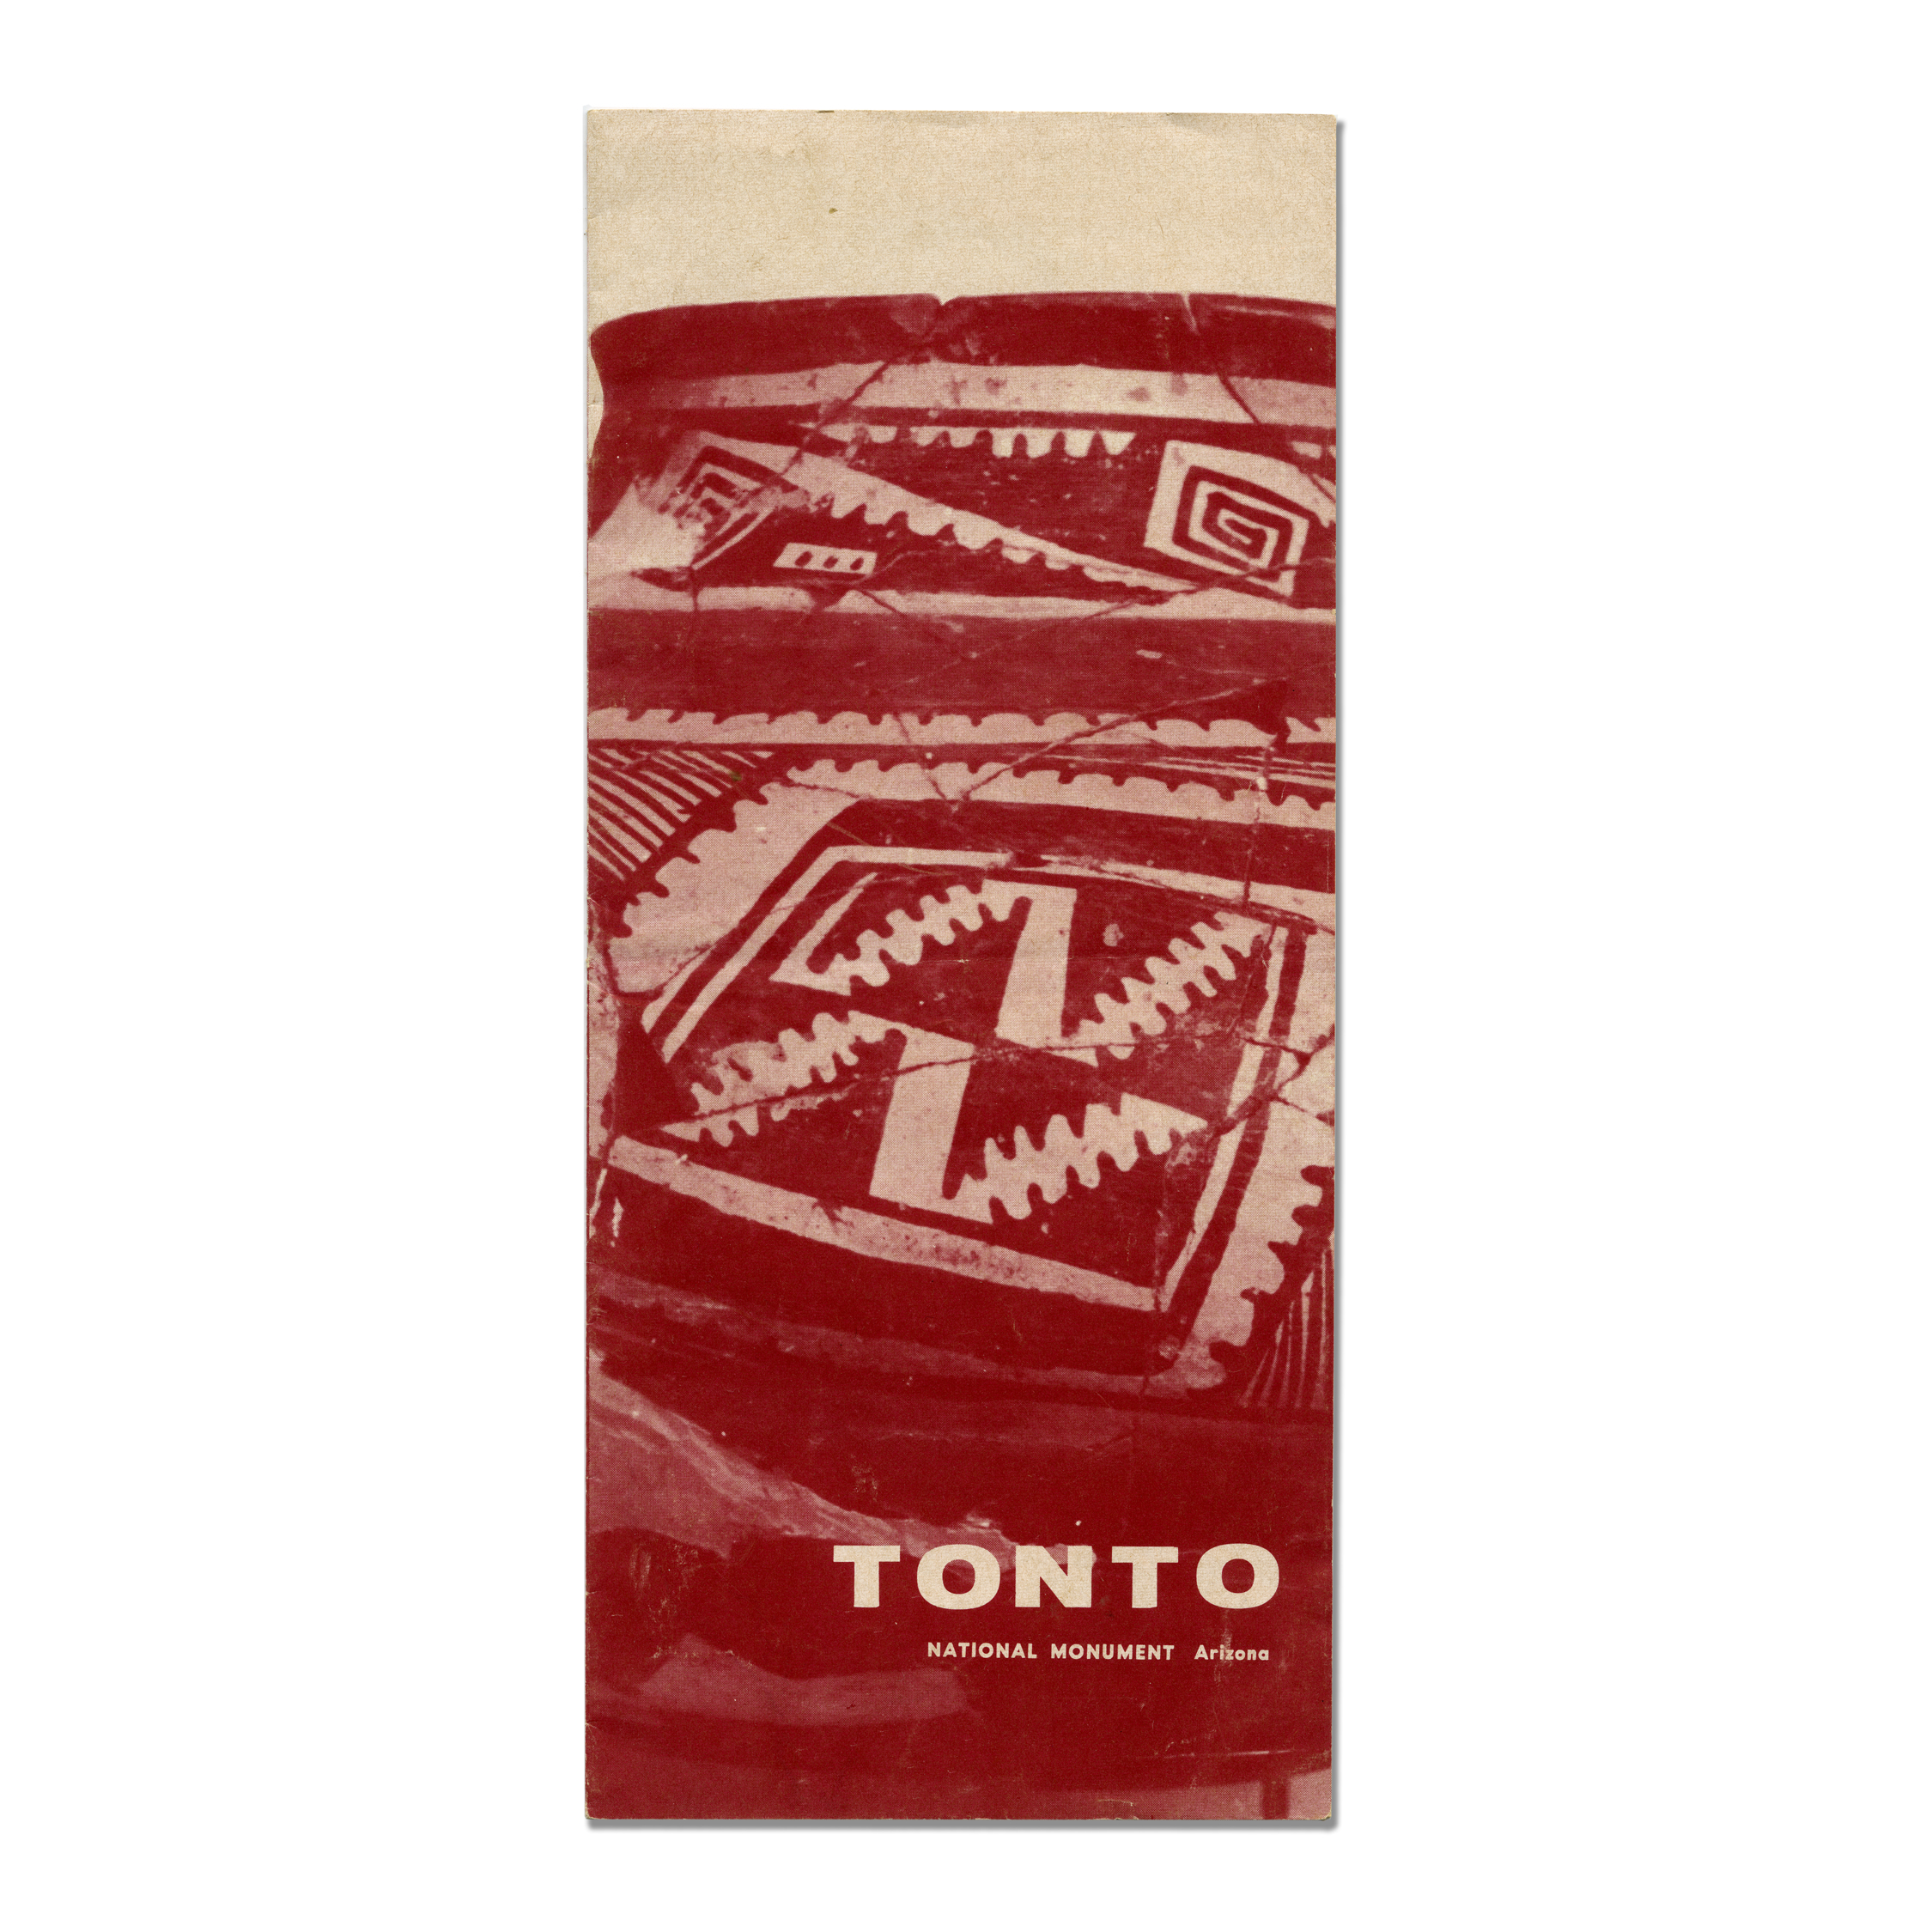 1965_tonto_national_monument_brochure.jpg